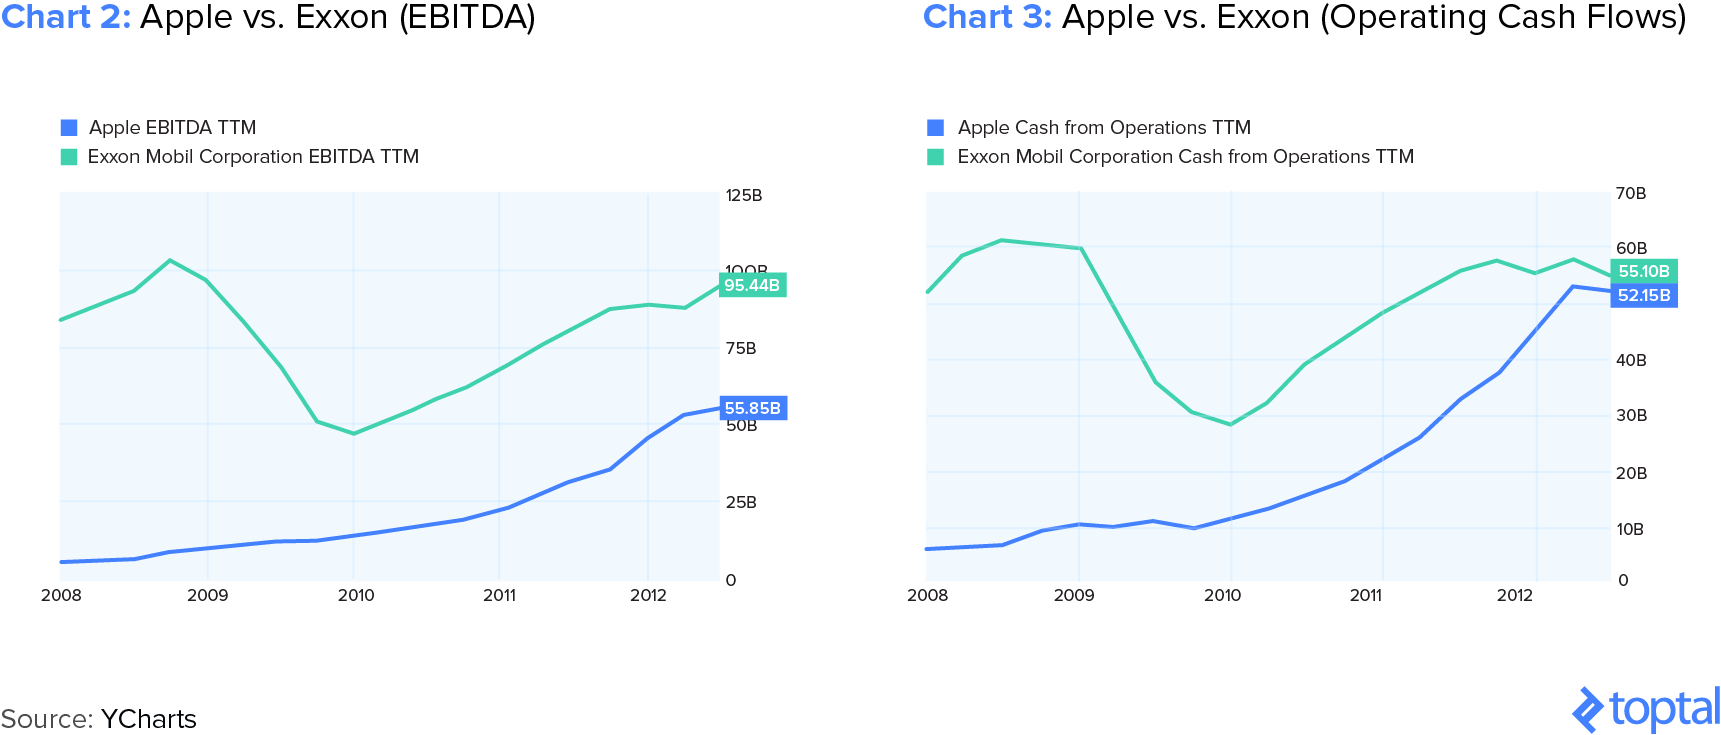 Chart 2: Apple vs. Exxon – EBITDA and Chart 3: Apple vs. Exxon – Operating Cash Flows